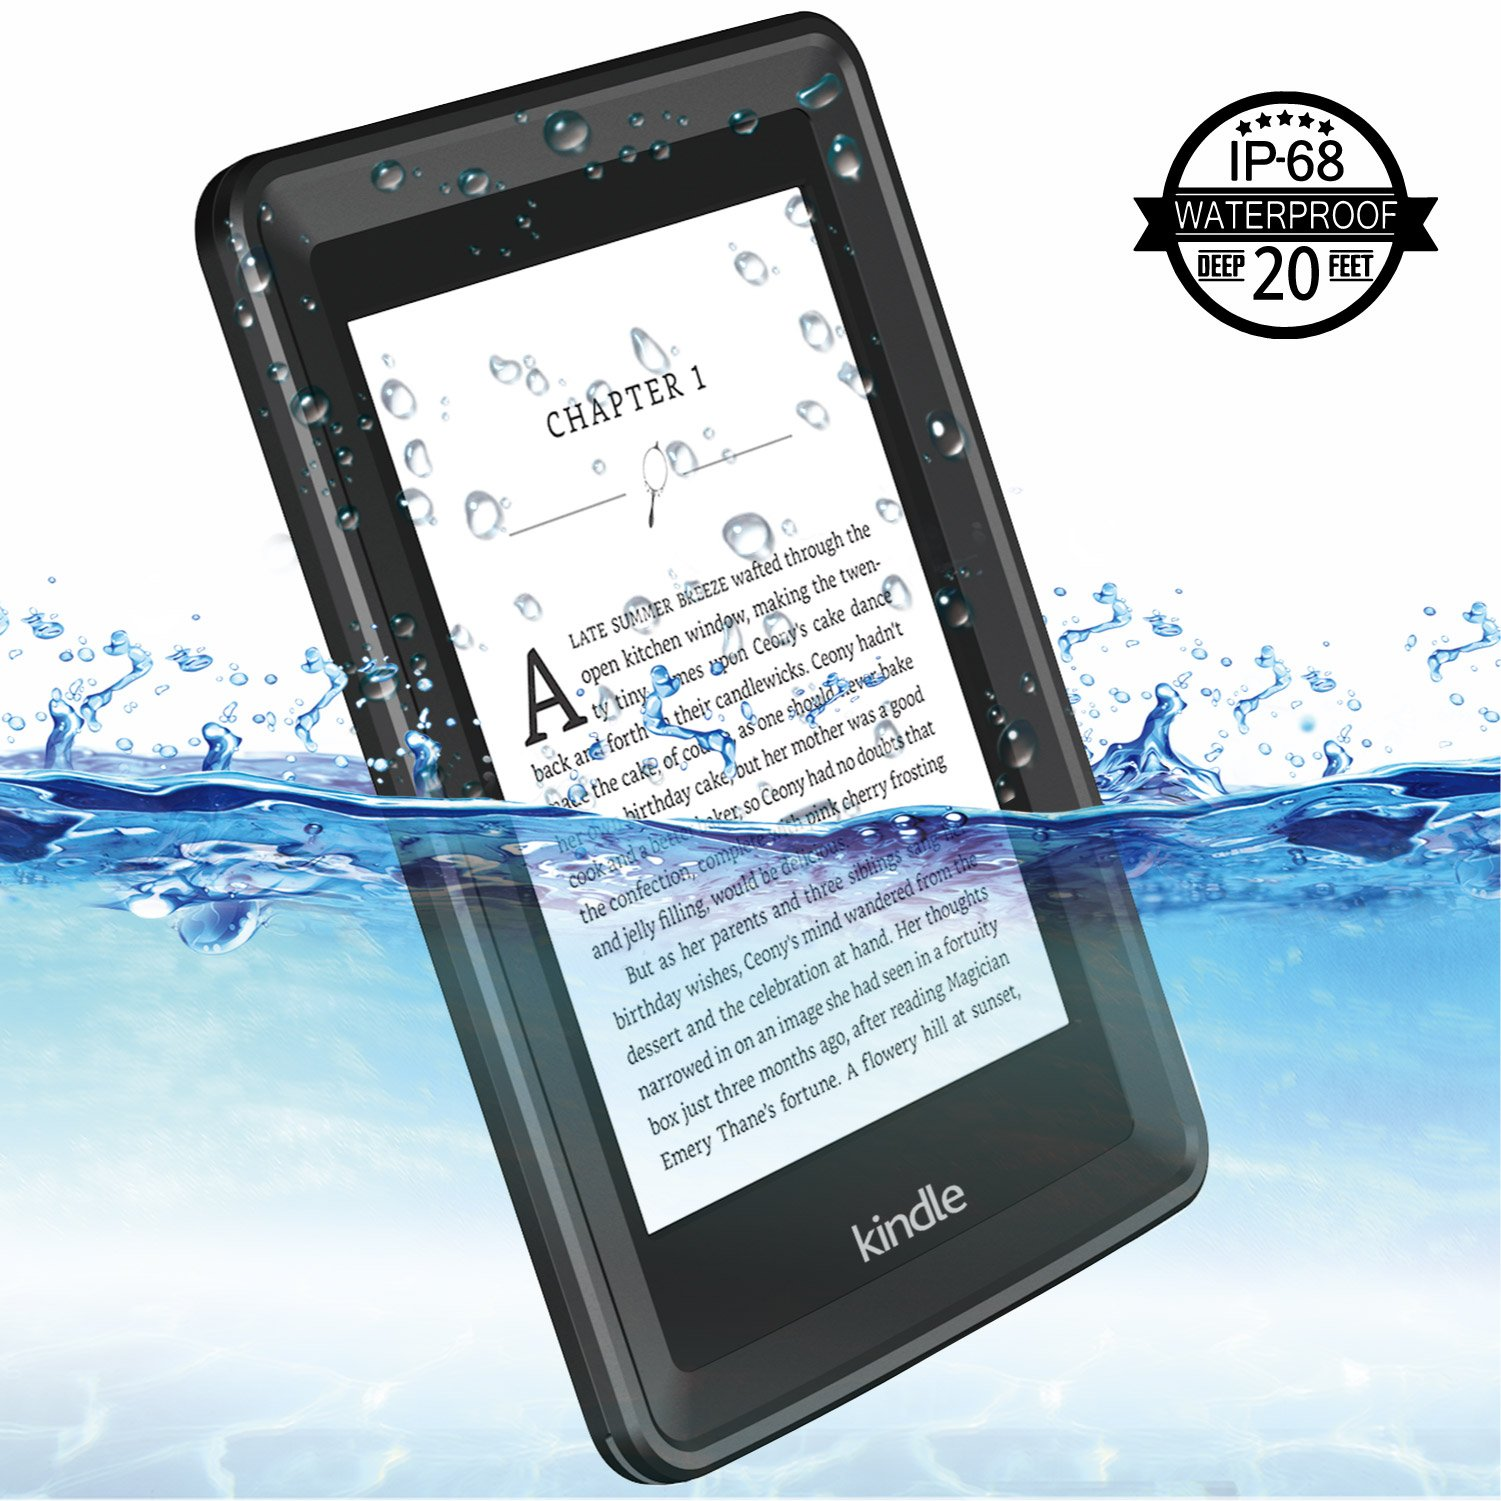 Temdan Kindle Paperwhite Waterproof Case Rugged Sleek Transparent Cover with Built in Screen Protector Waterproof Case for Kindle Paperwhite. by Temdan (Image #2)